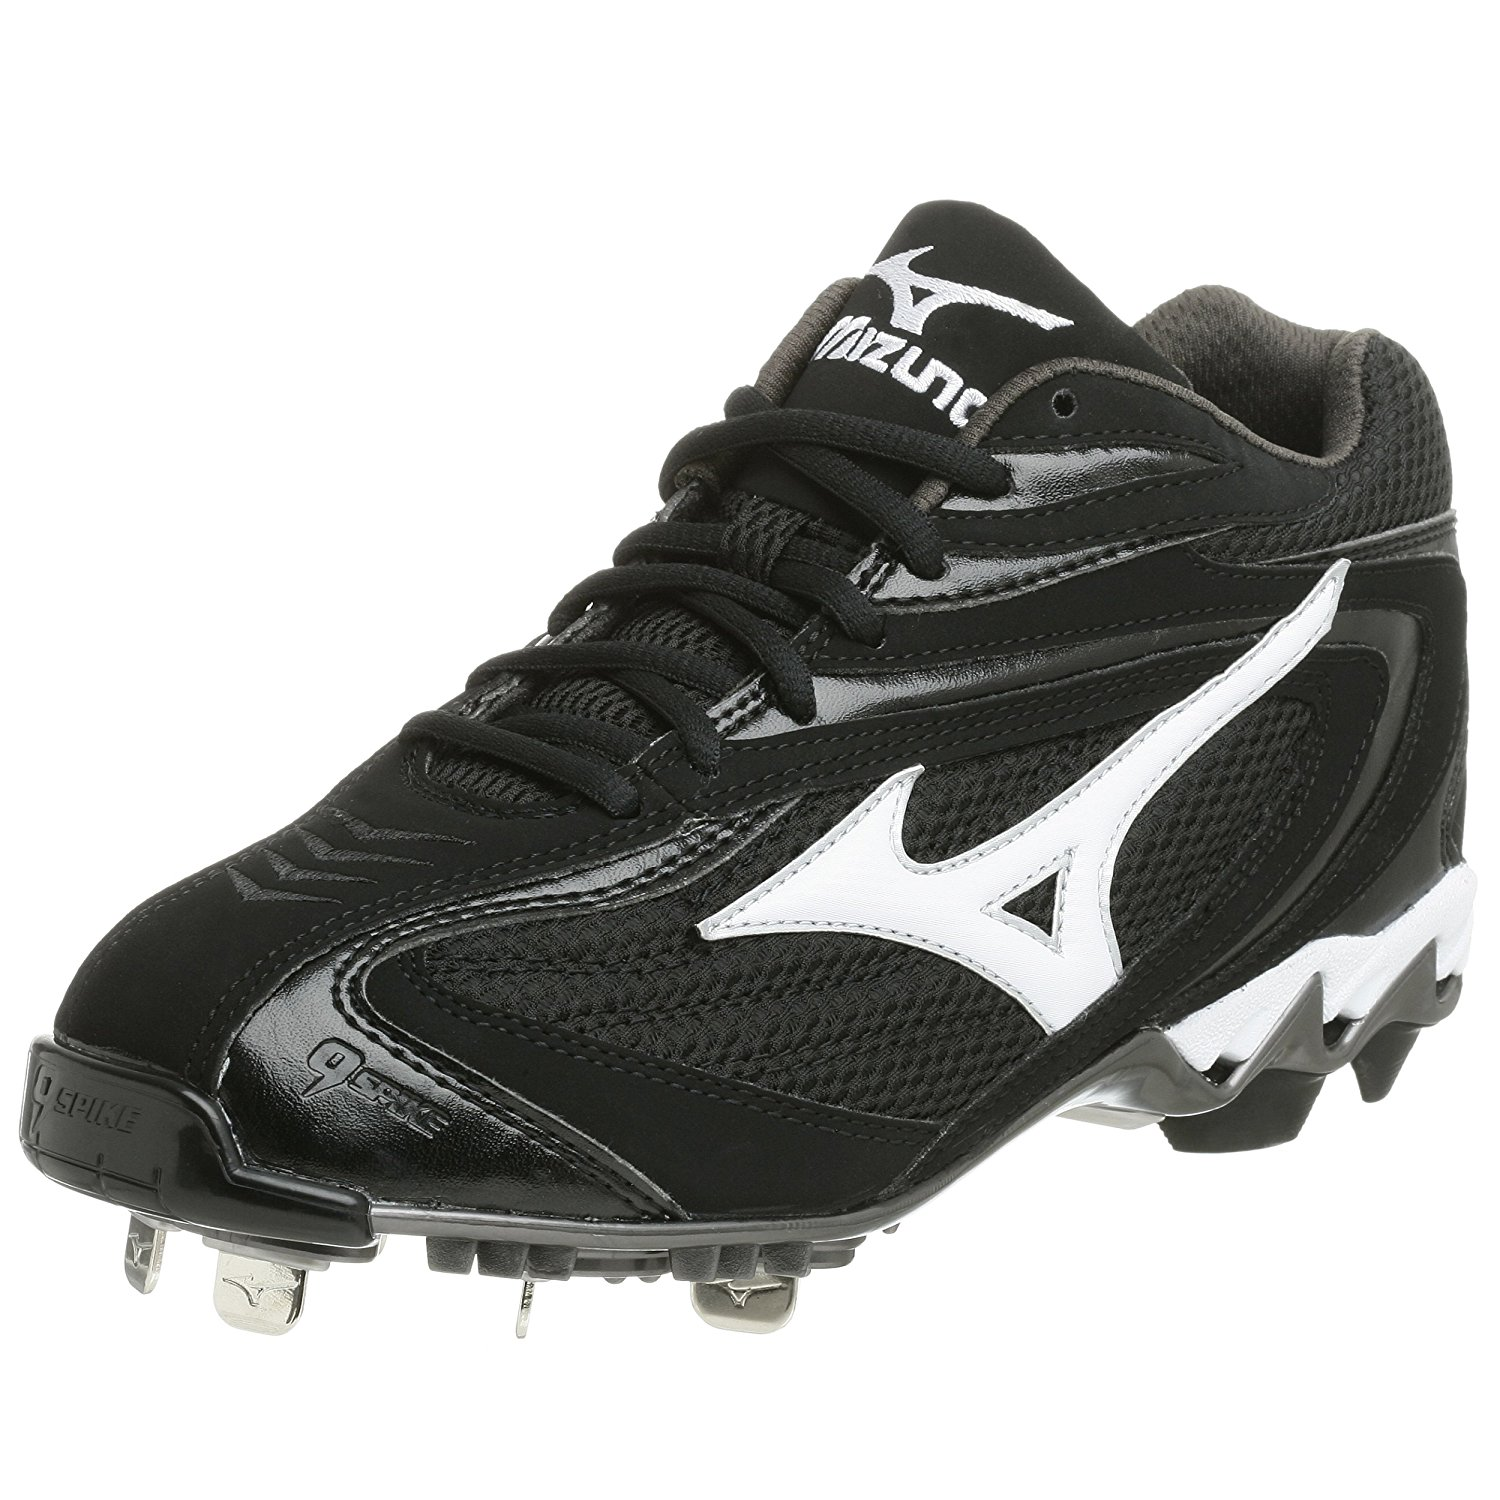 1838575ea Buy Mizuno Mens 9-Spike Lite Vapor Mid G3 Cleat in Cheap Price on ...